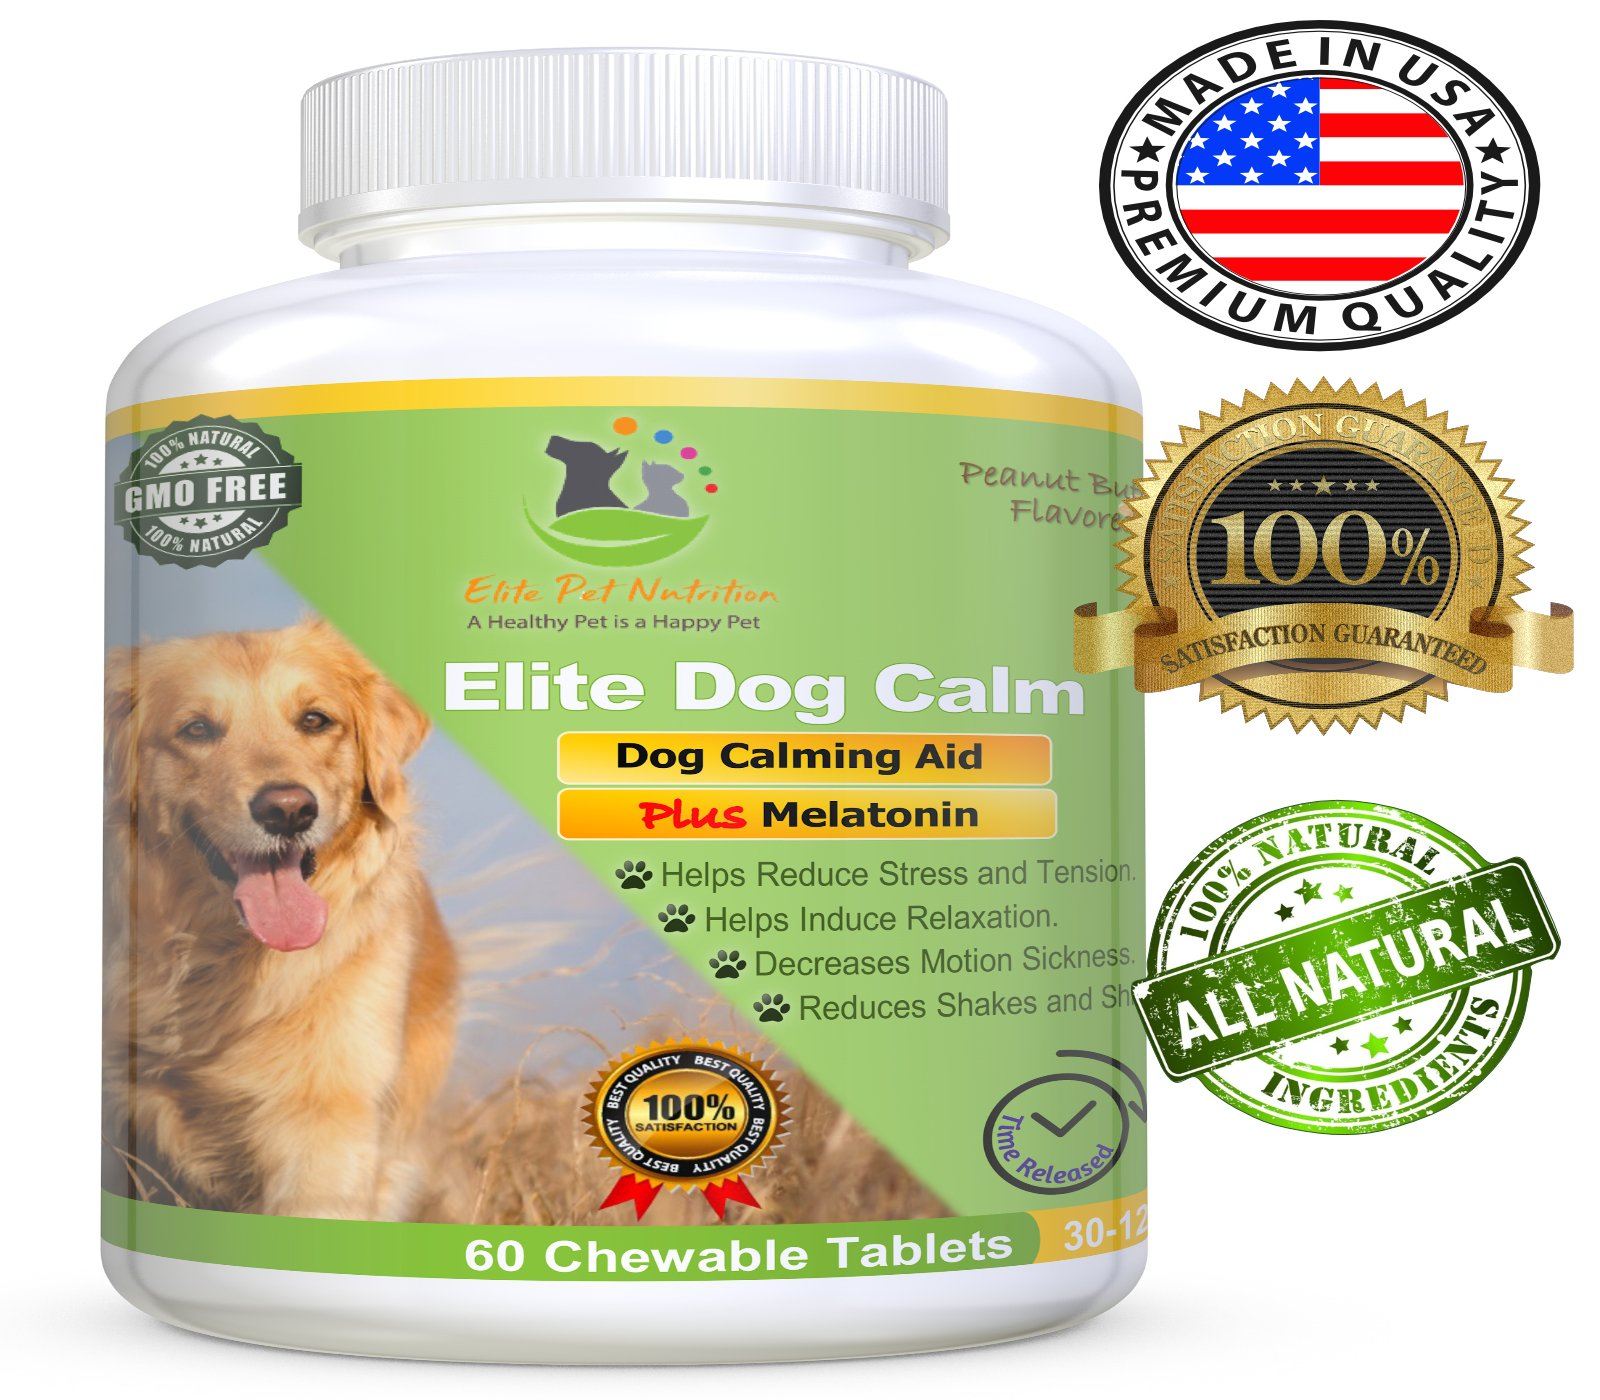 Elite Dog Calm, Advanced All Natural Calming Aid Relaxant for Dogs Relieves Separation Anxiety, & Stress Made In USA 60 Chewable Tablets